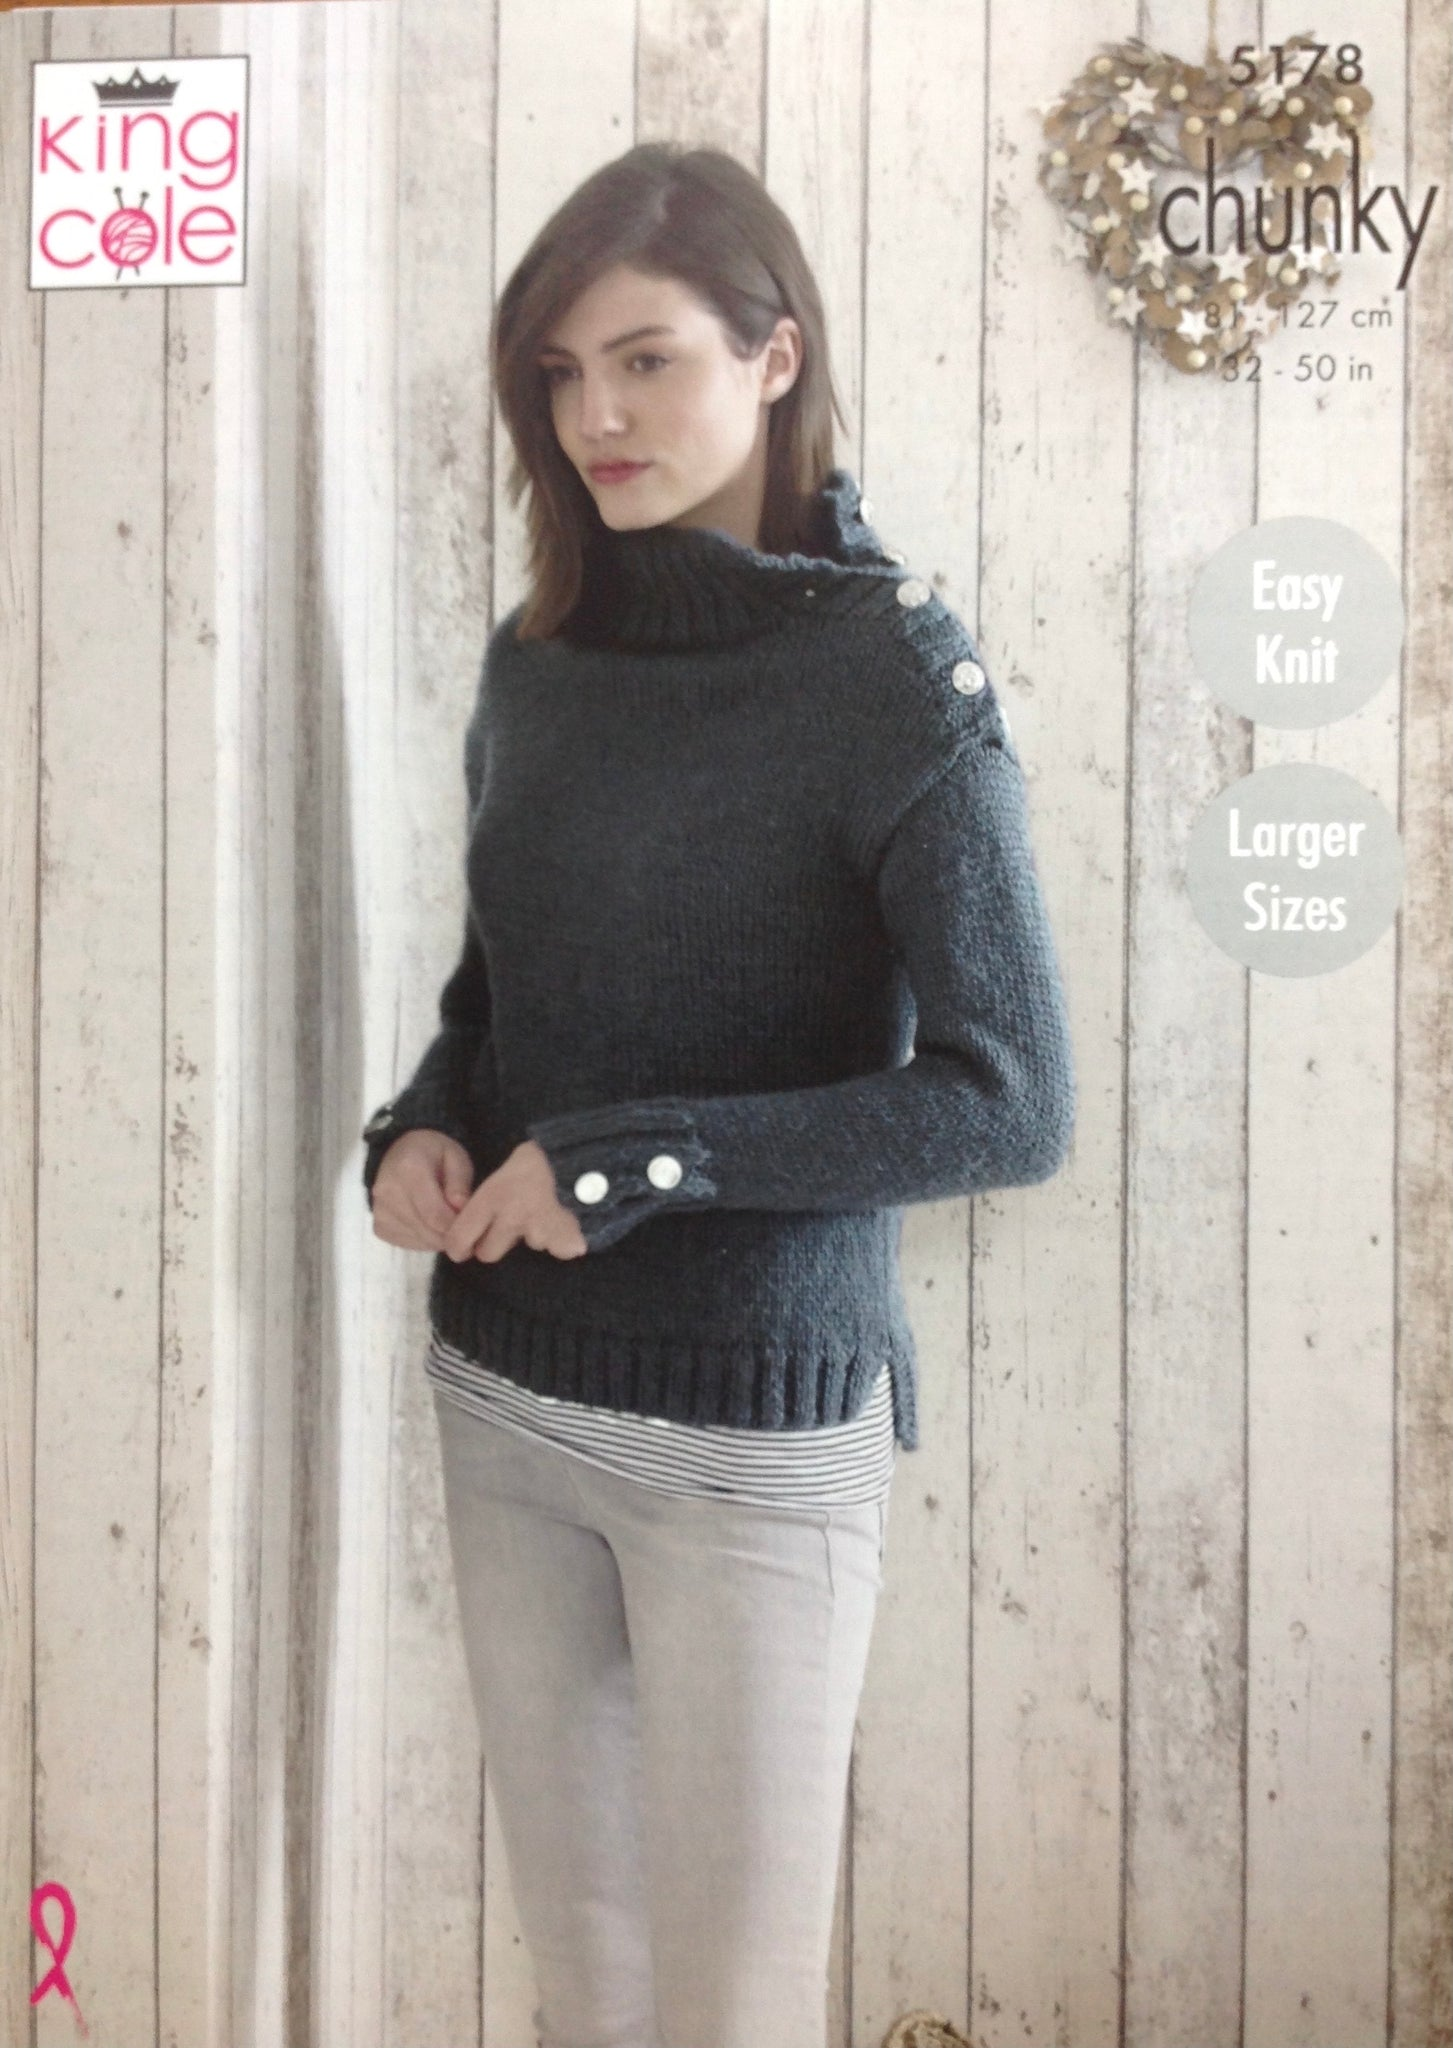 5178 King Cole chunky sweaters and hat knitting pattern